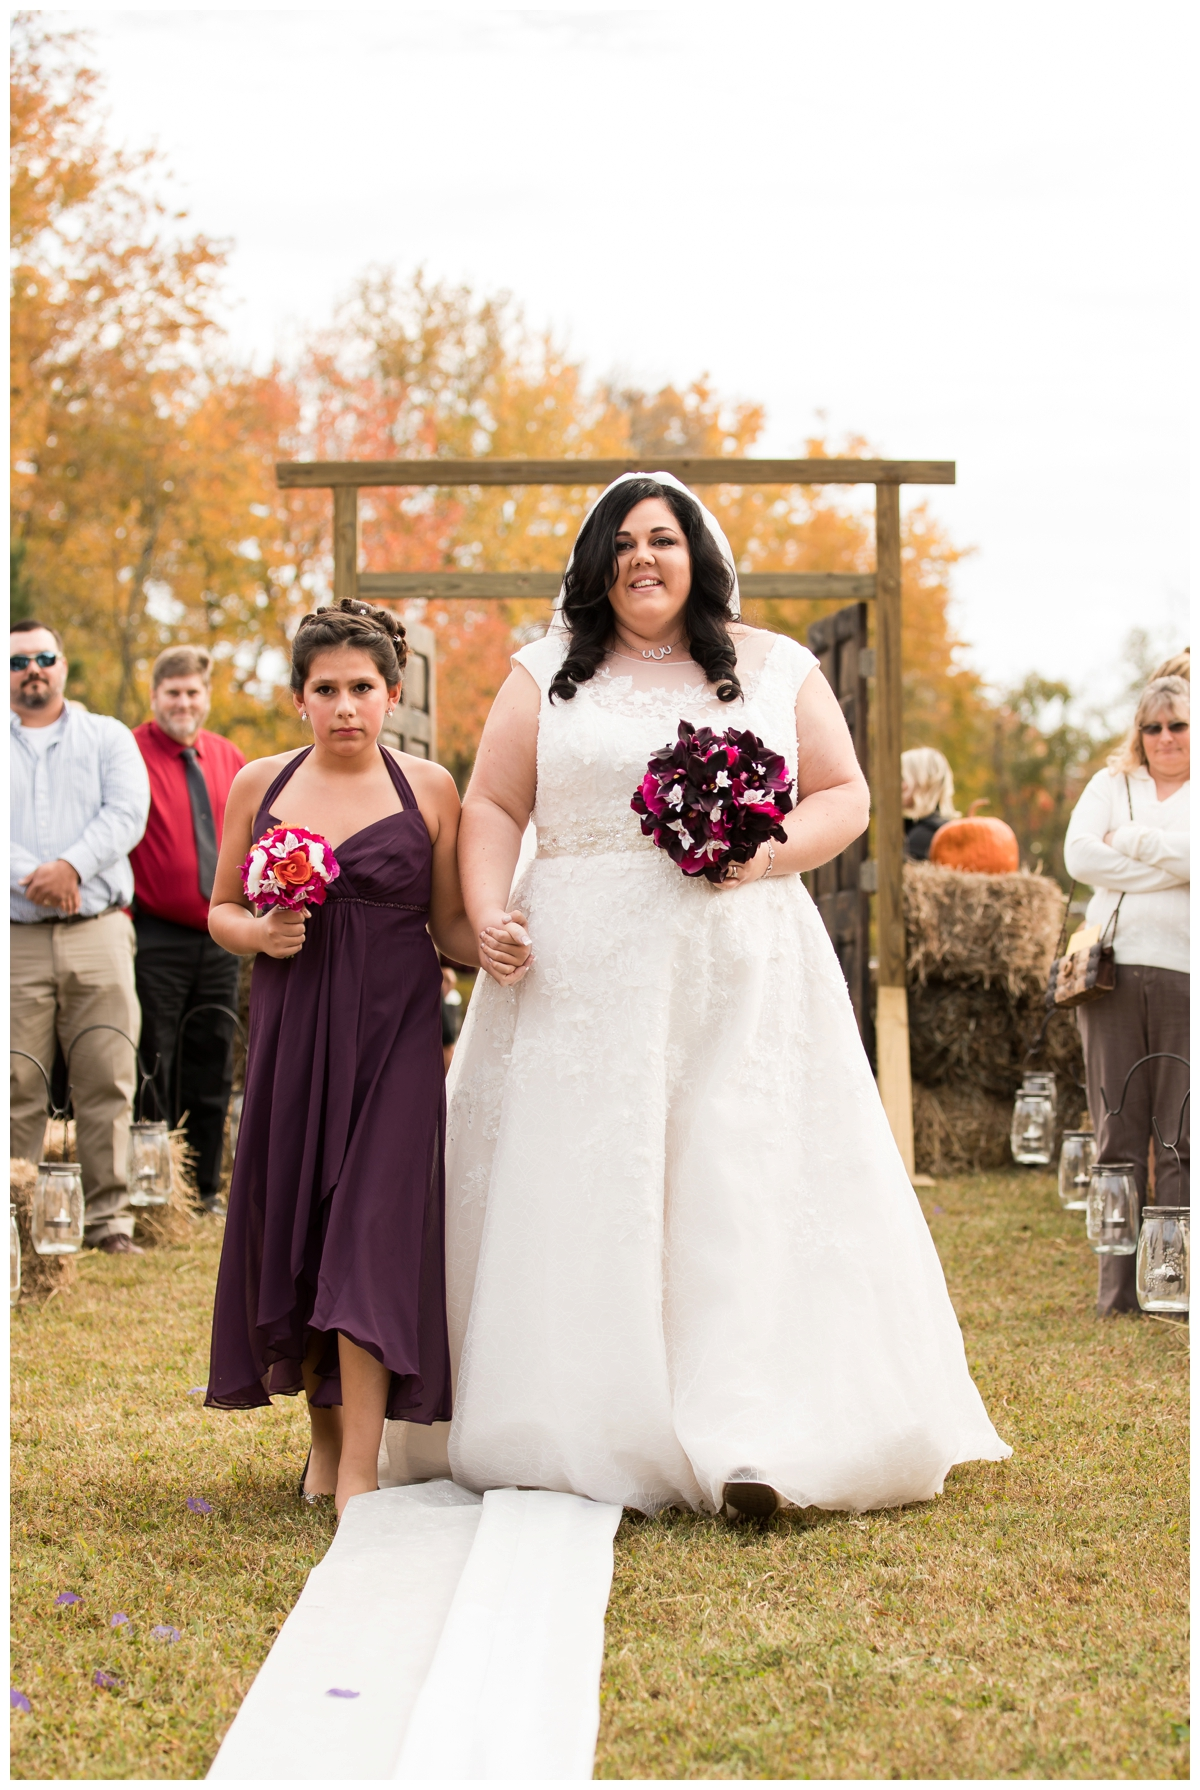 Bride being walked down the aisle by her daughter